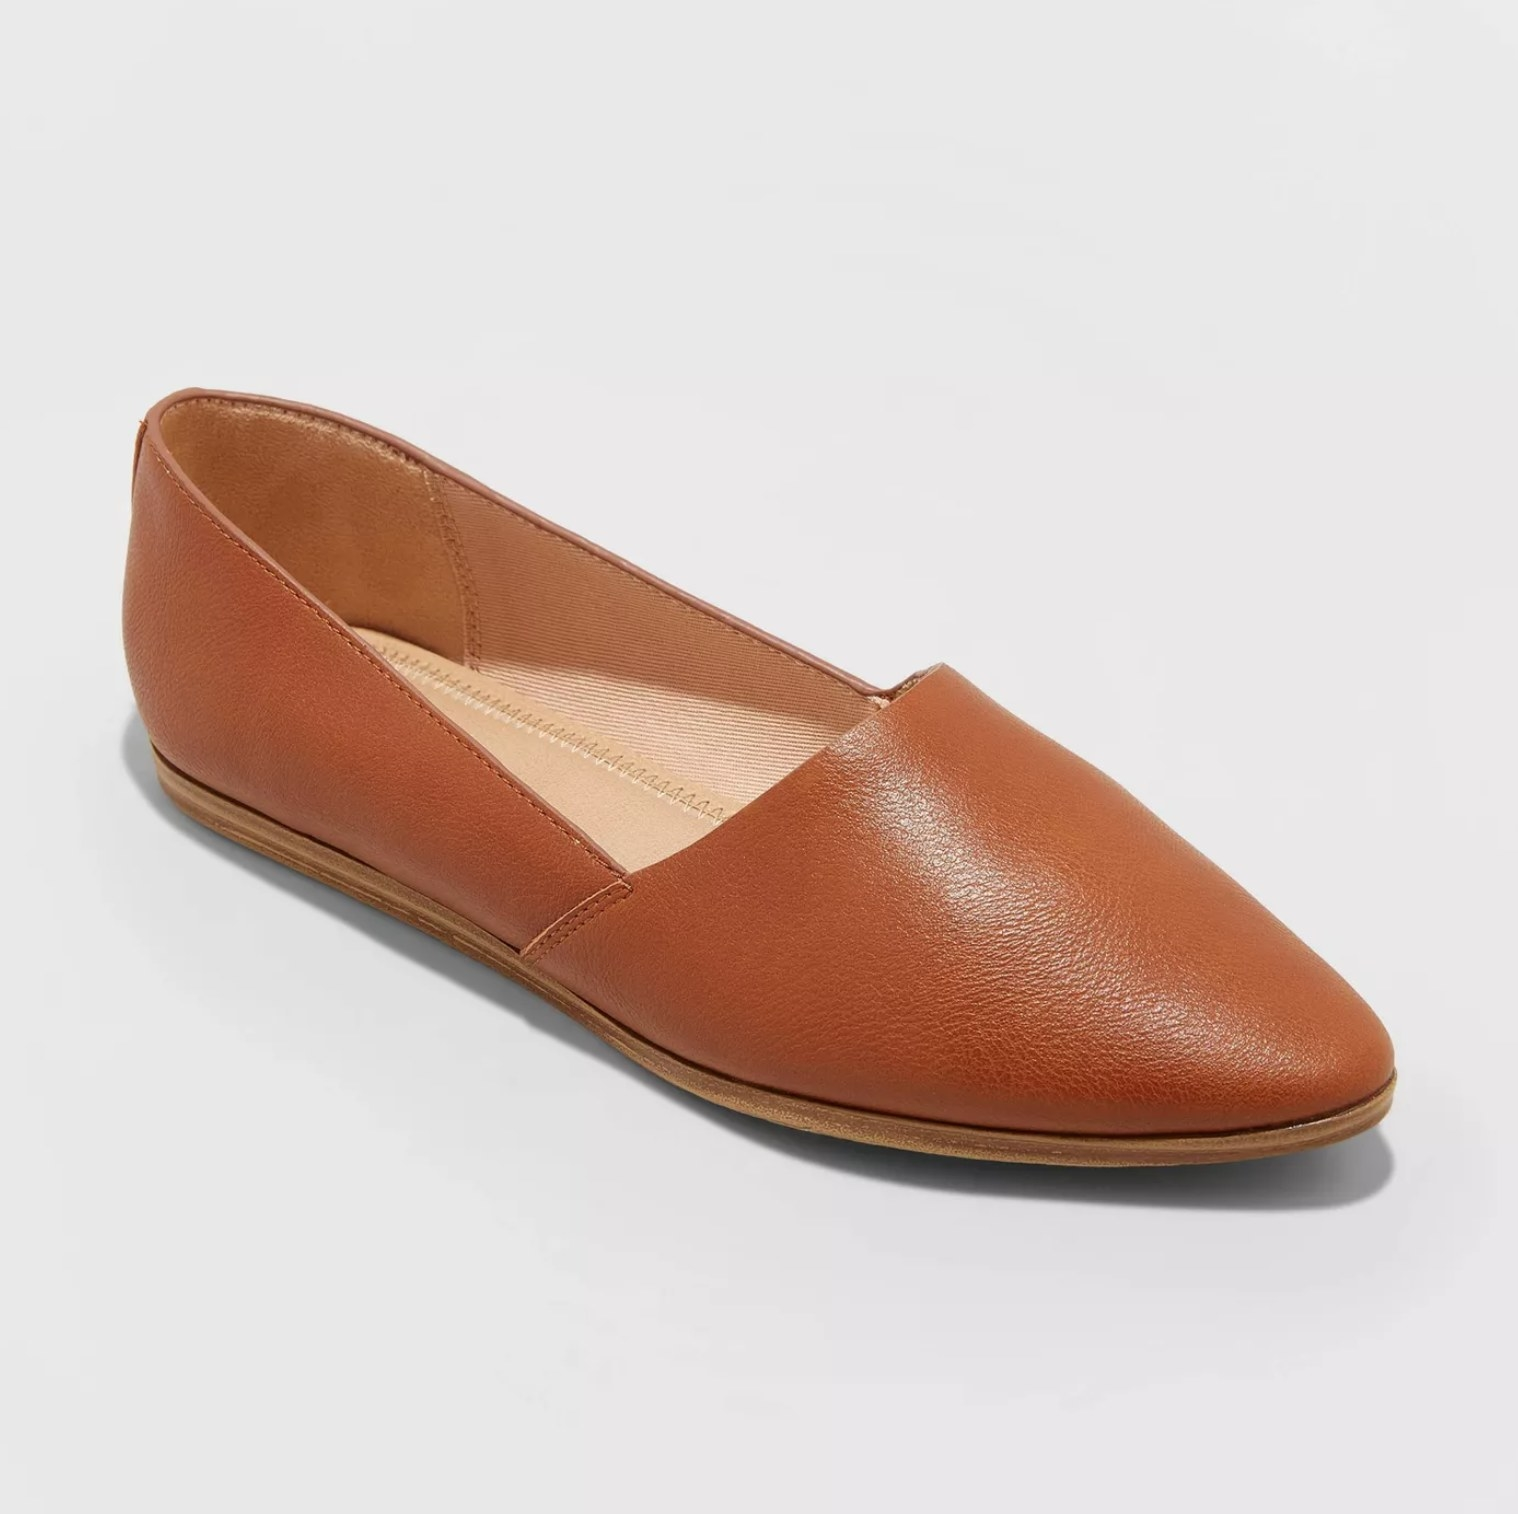 The loafers in cognac